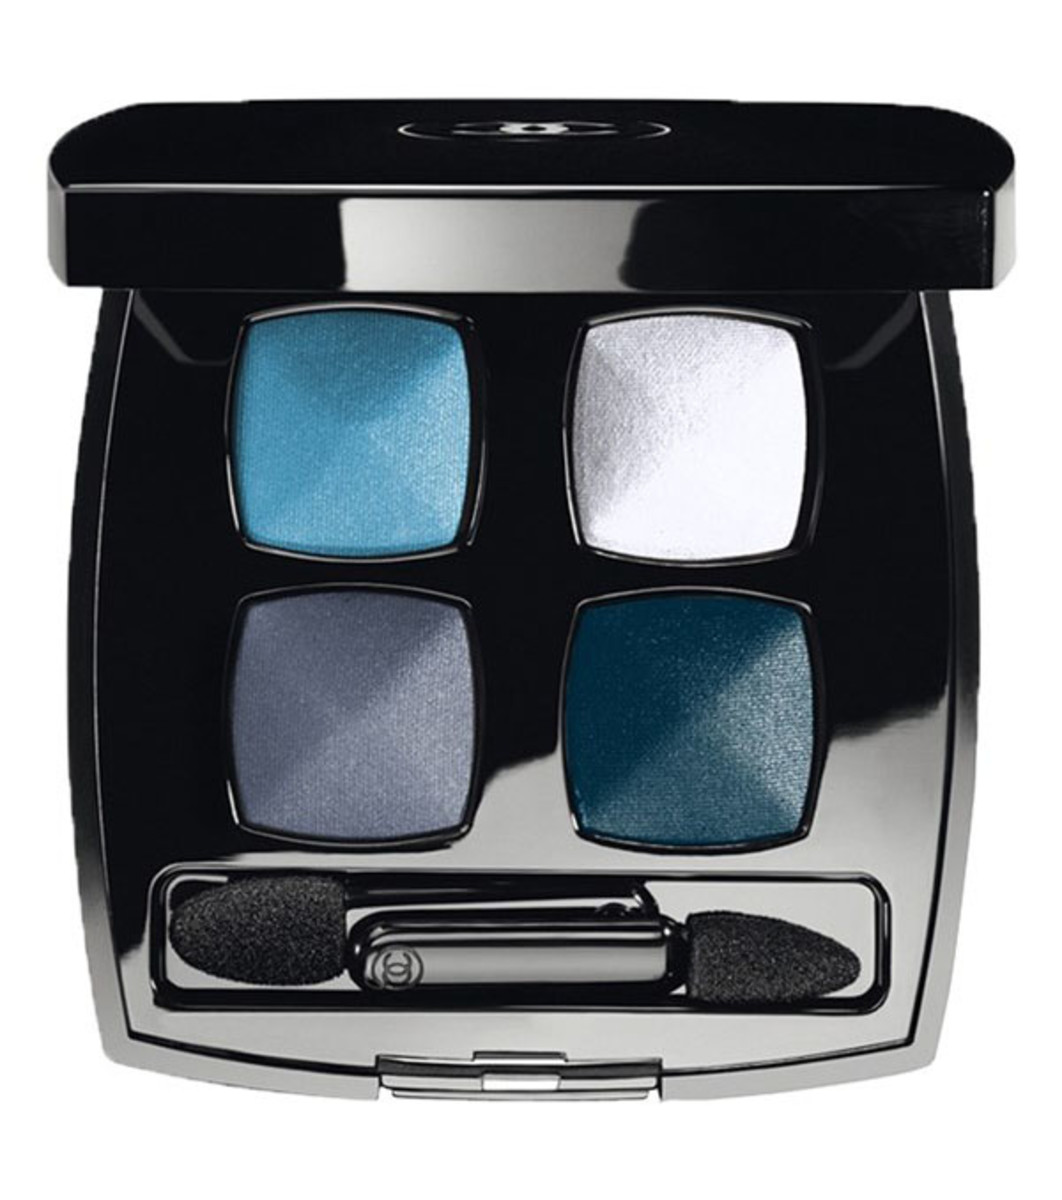 Chanel Les 4 Ombres Quadra Eyeshadow in 41 Fascination